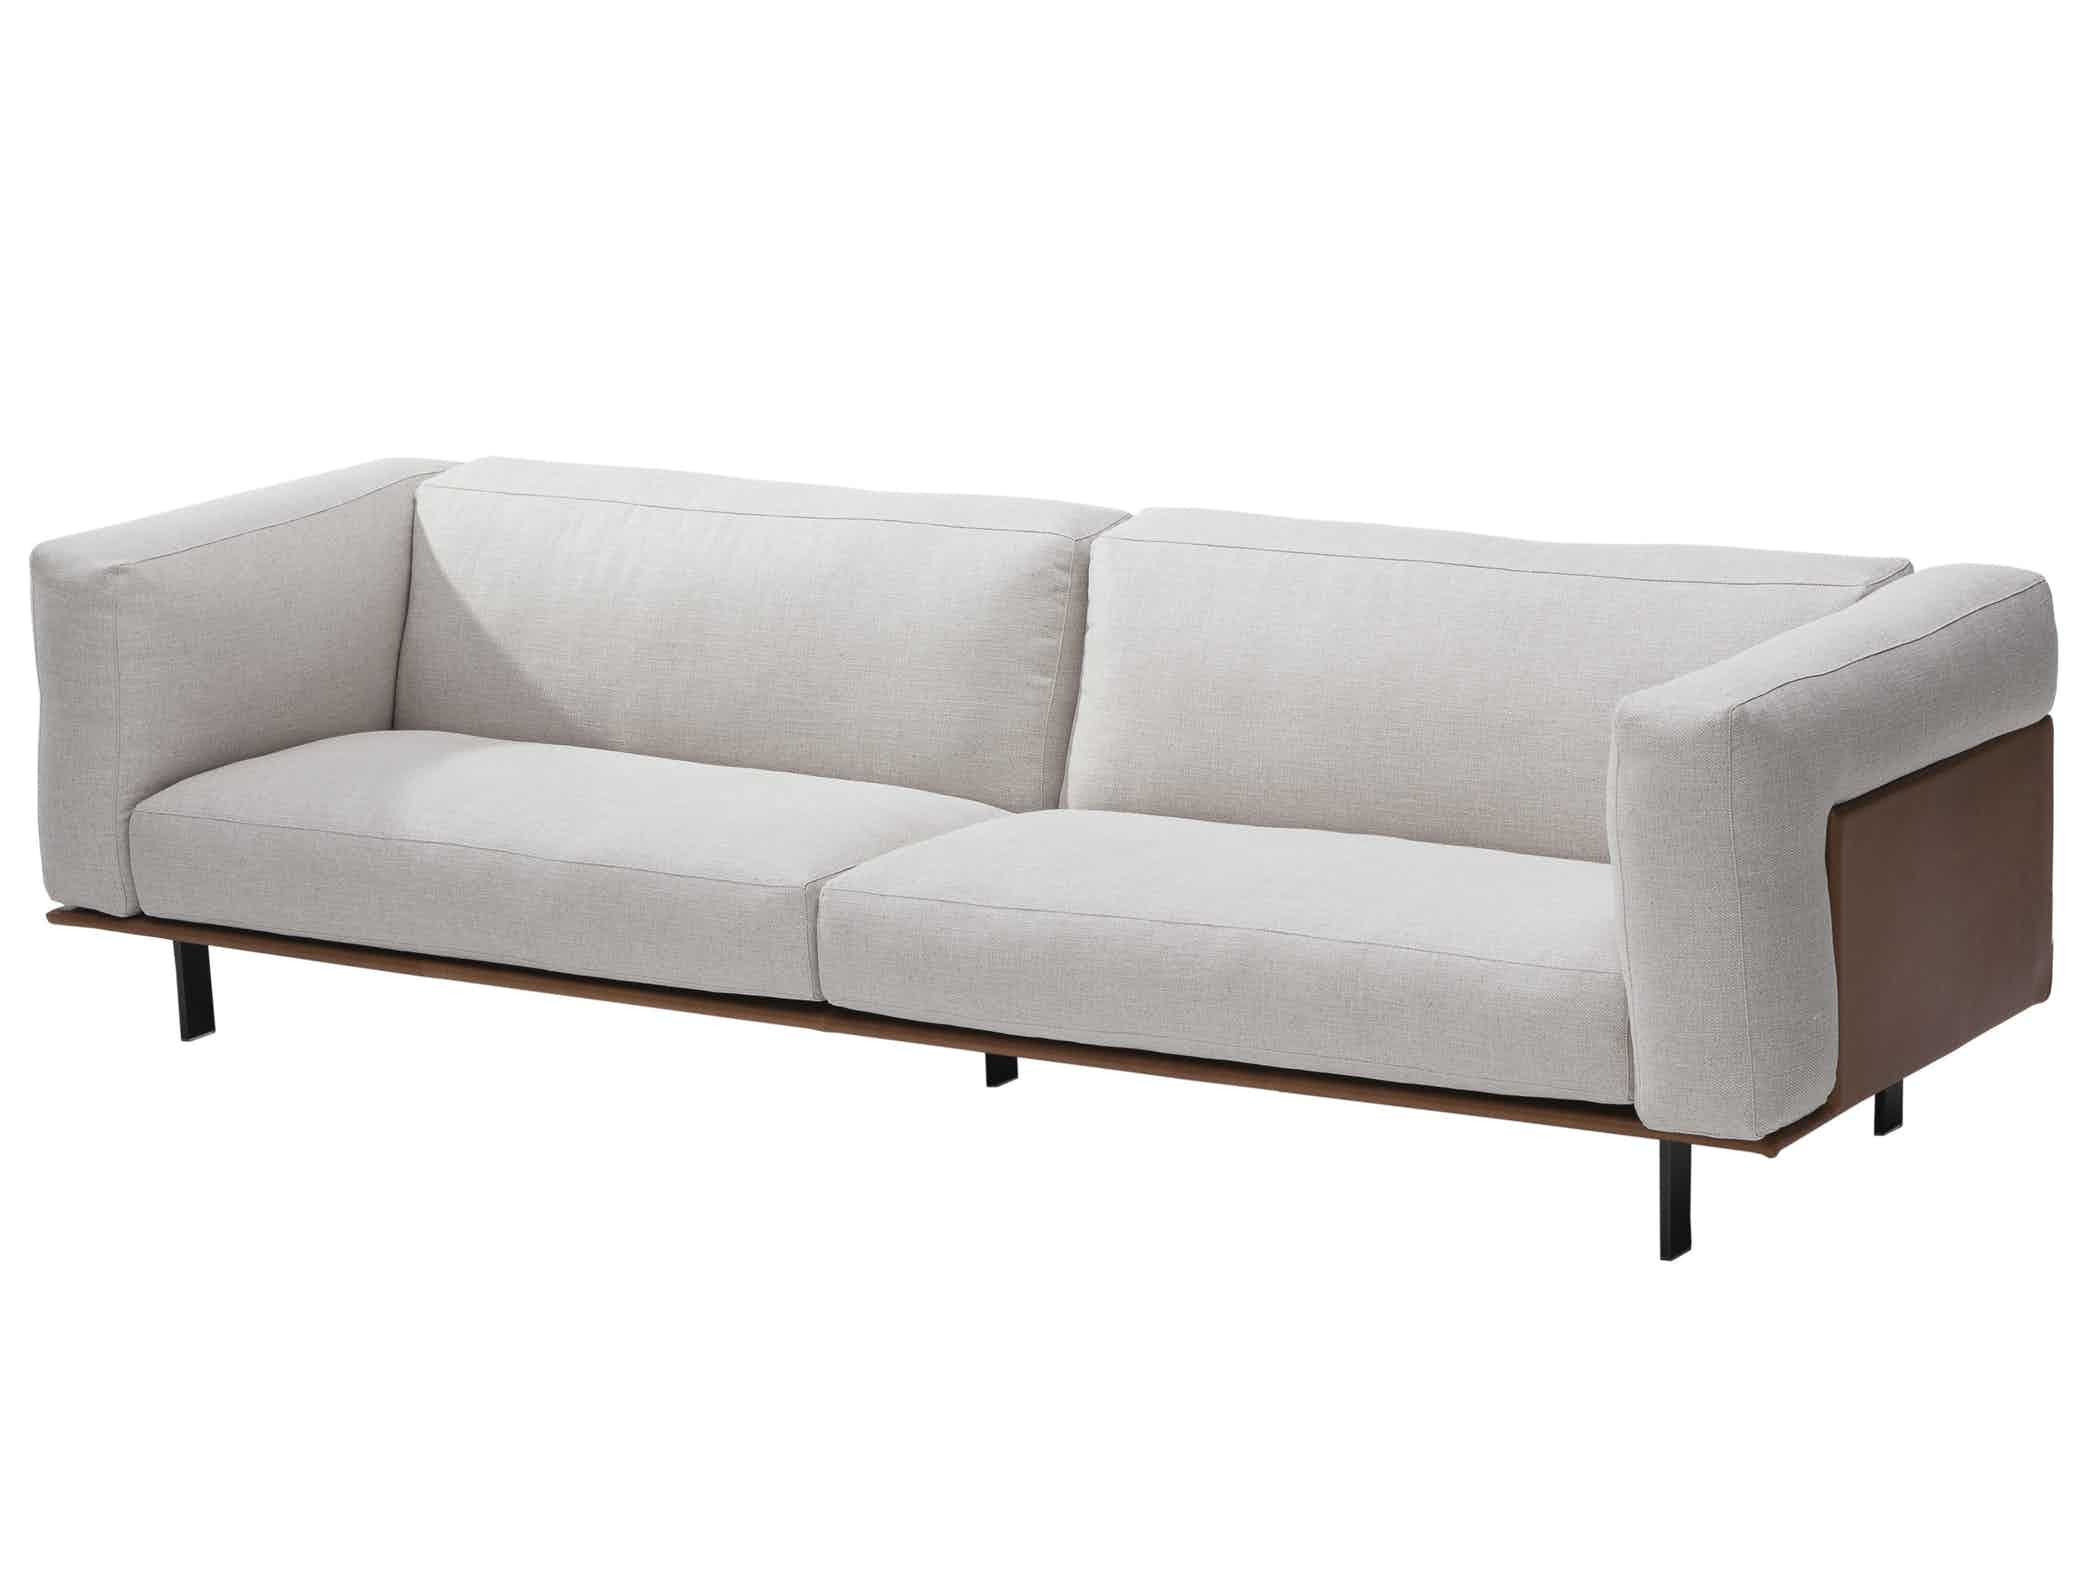 Linteloo-angle-recess-sofa-haute-living